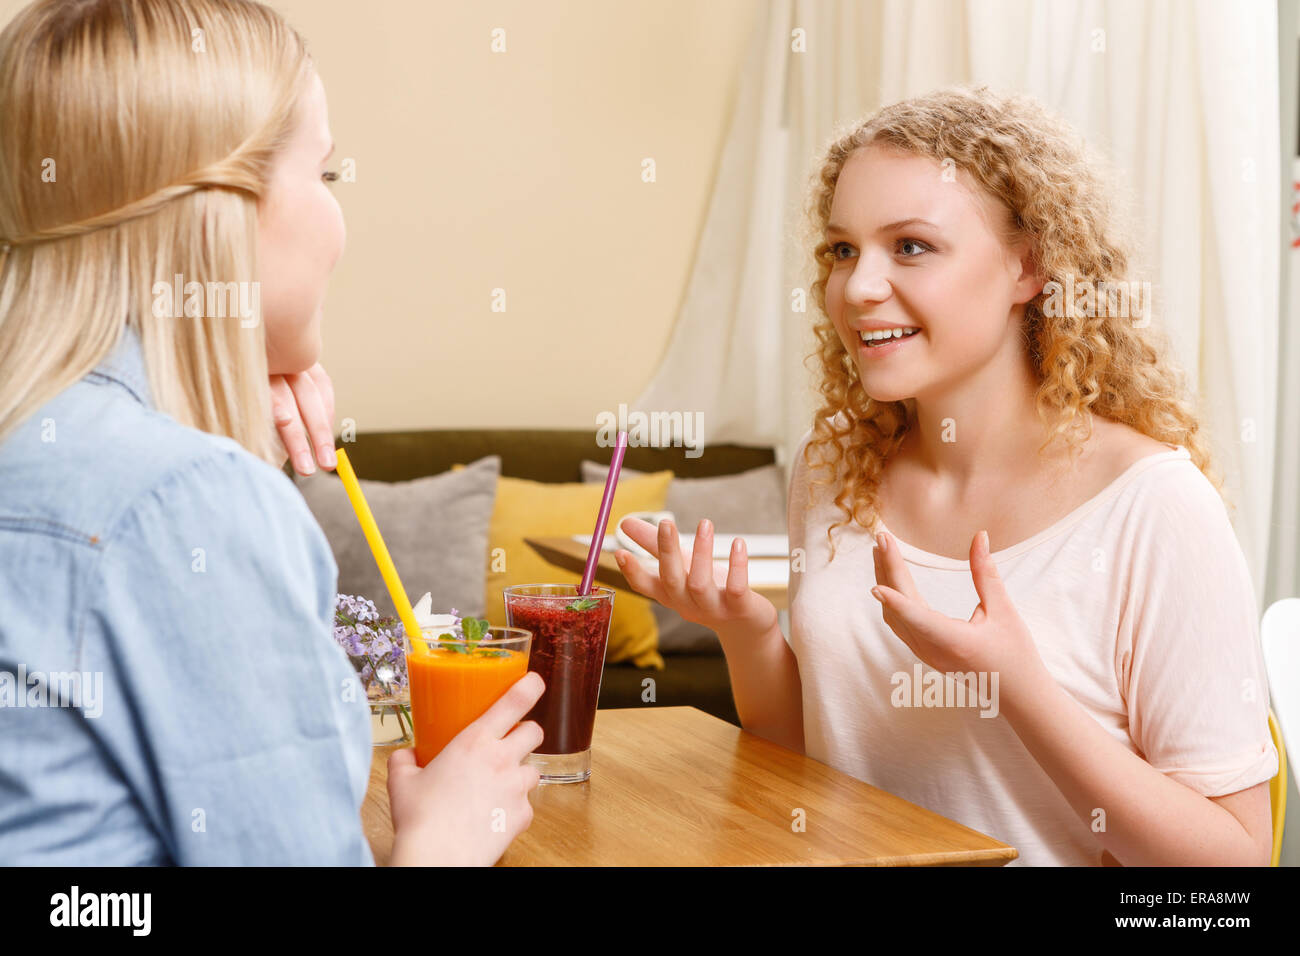 Two girls having conversation in cafe - Stock Image